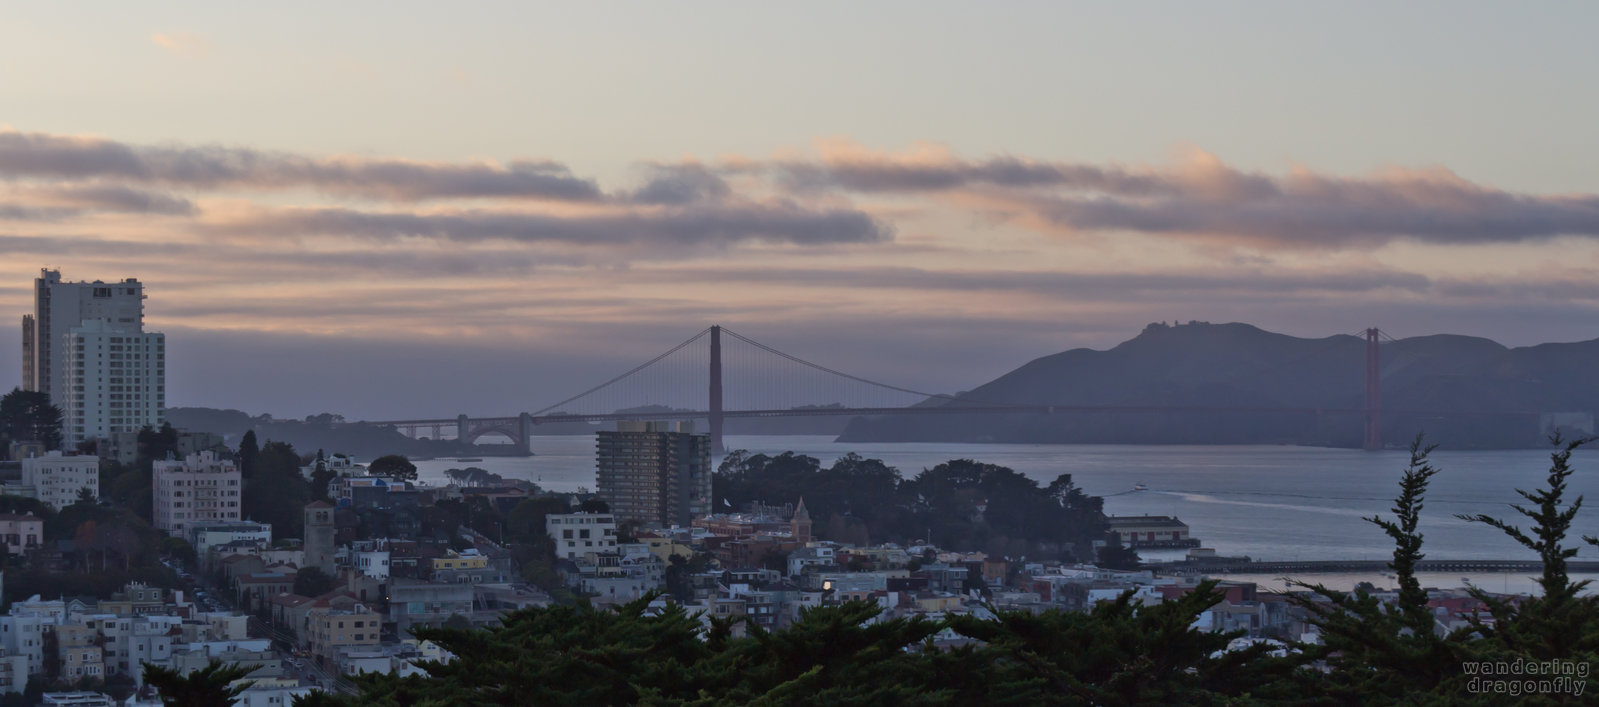 The Golden Gate Bridge at twilight as seen from the Coit Tower -- bridge, building